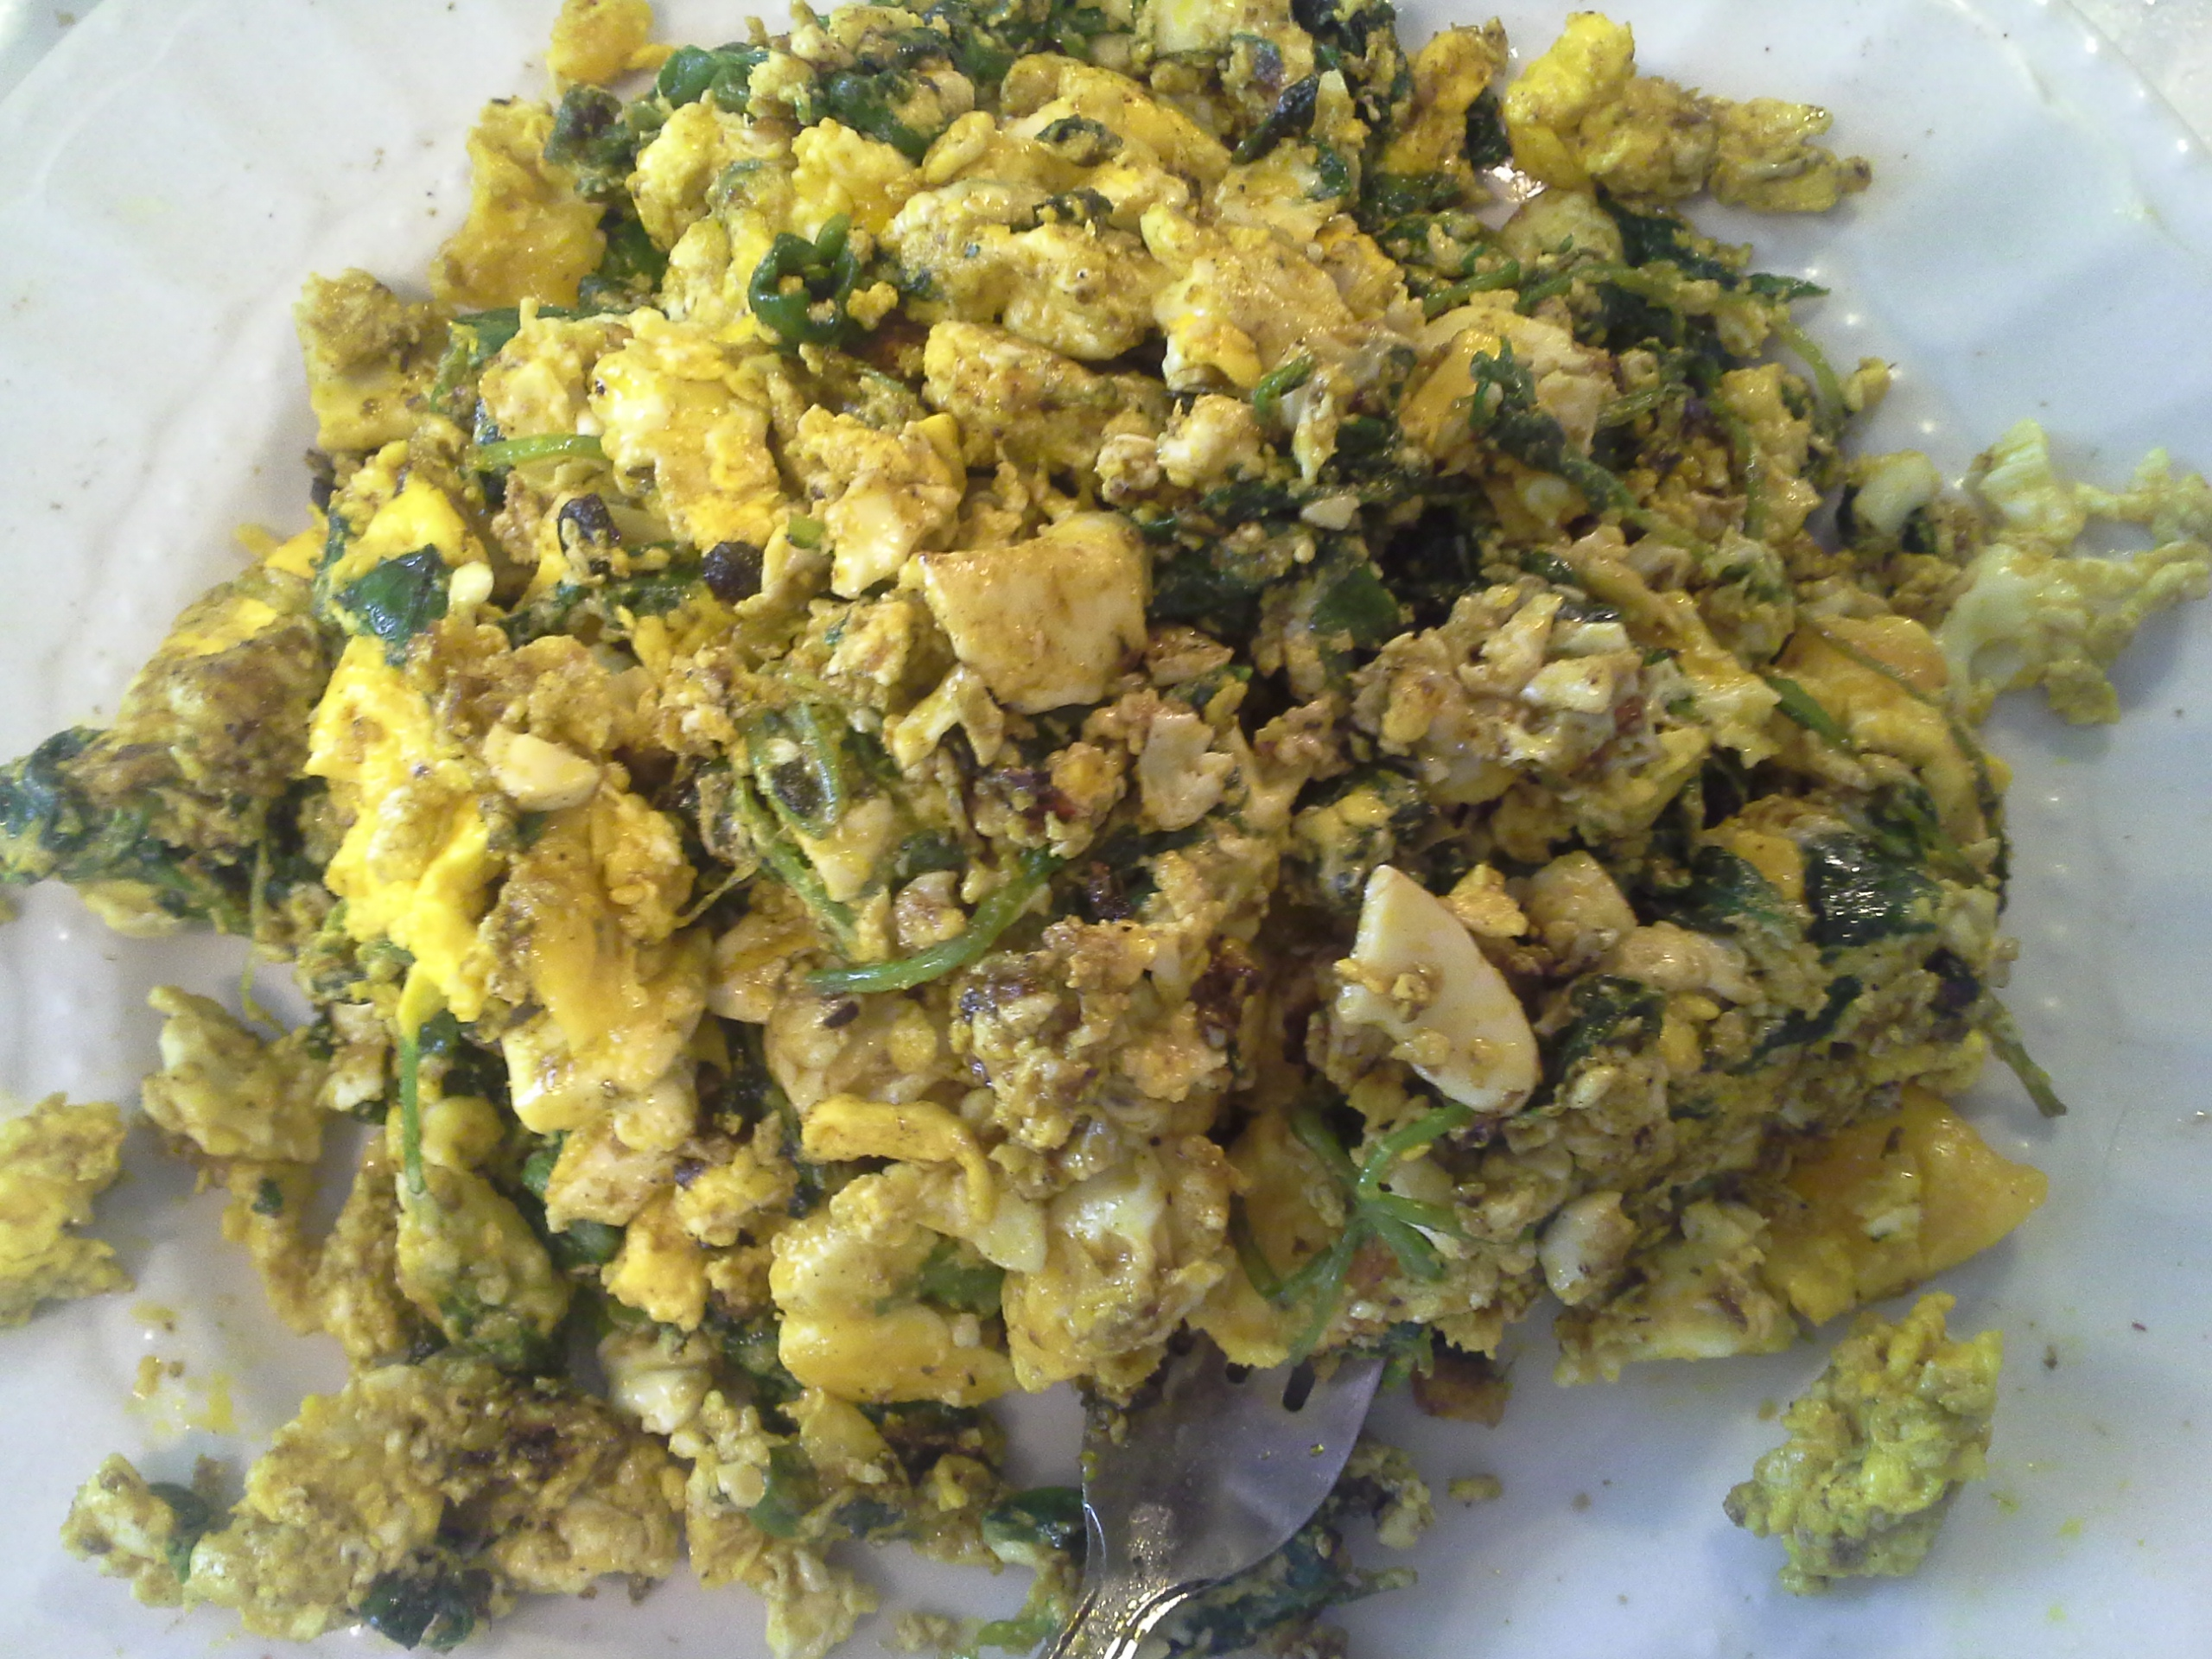 Breakfast: 11:35 a.m. | 6 eggs, 2 oz. baby kale, 2 Tbsp red palm oil, herbs & spices